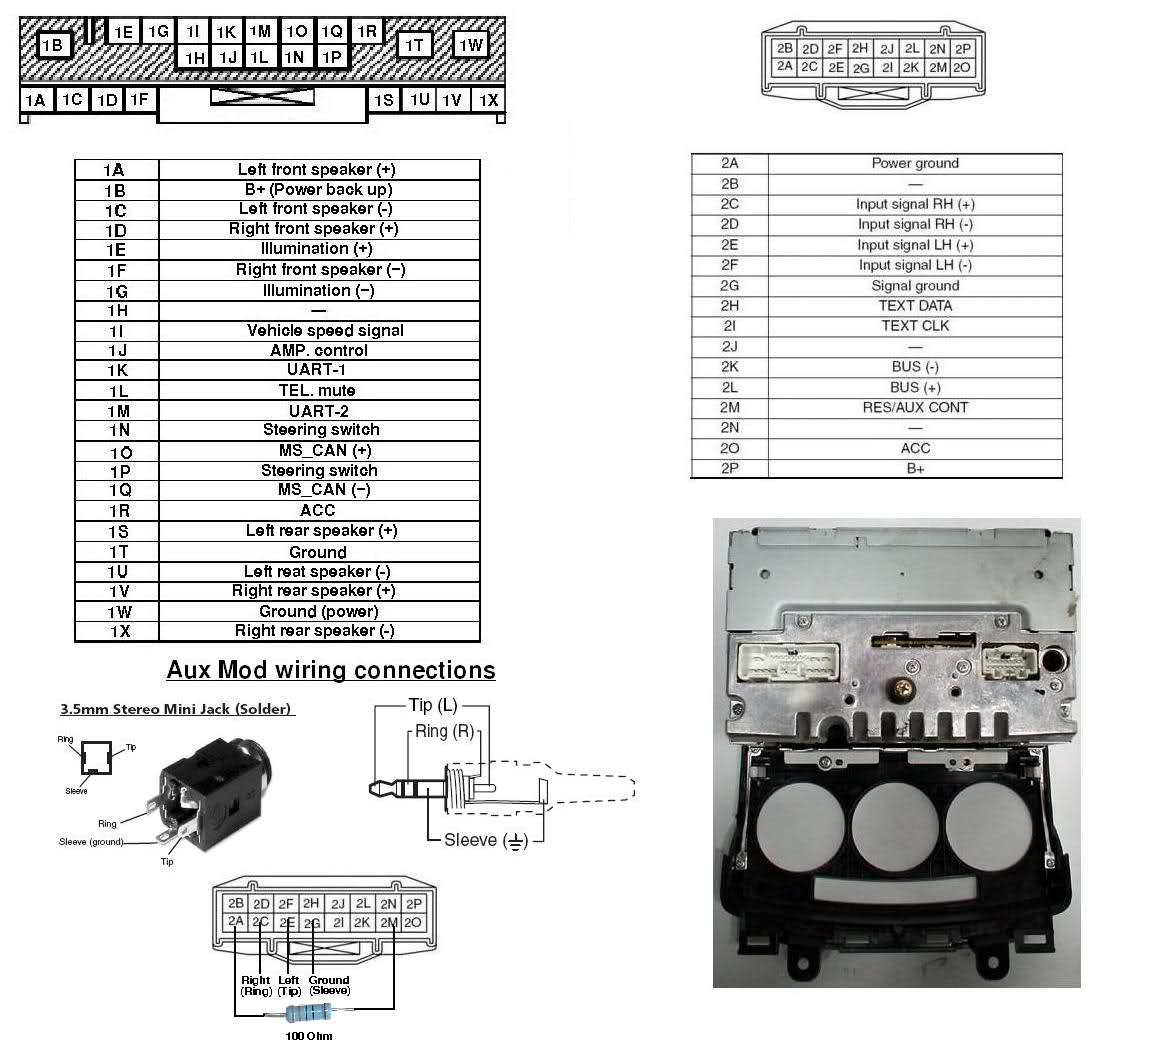 [SCHEMATICS_4FR]  2004 Mazda 2 Wiring Diagram - lari.faint.bestbios.nl | Mazda Cx 7 Radio Wiring Diagram |  | Diagram Source